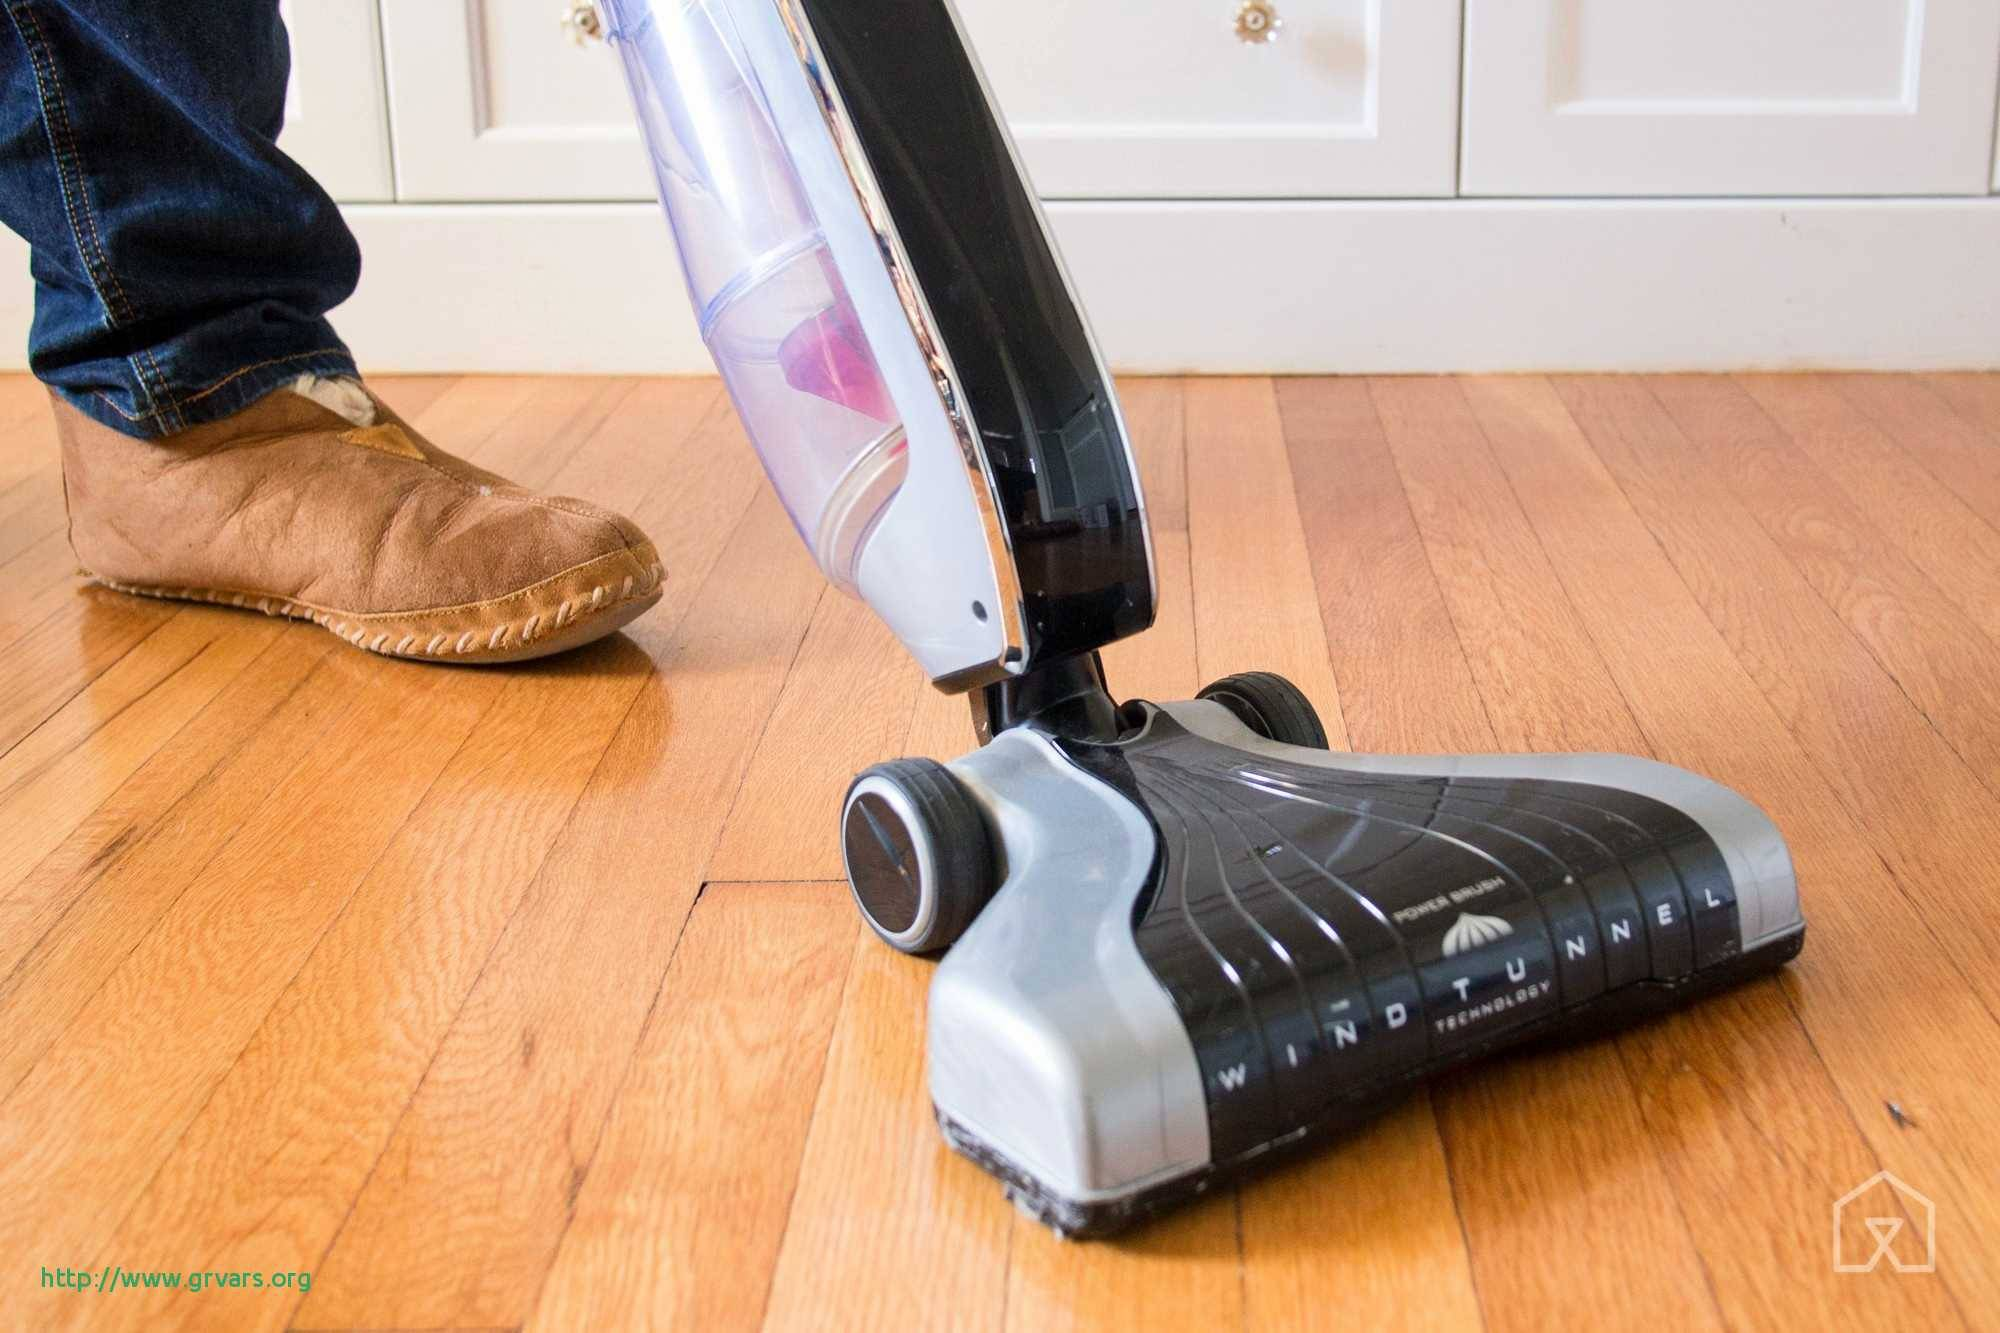 hardwood floor vacuum and steamer of steamer on laminate floors inspirant 11 best od floors pinterest with steamer on laminate floors inspirant 11 best od floors pinterest awesome wood floor